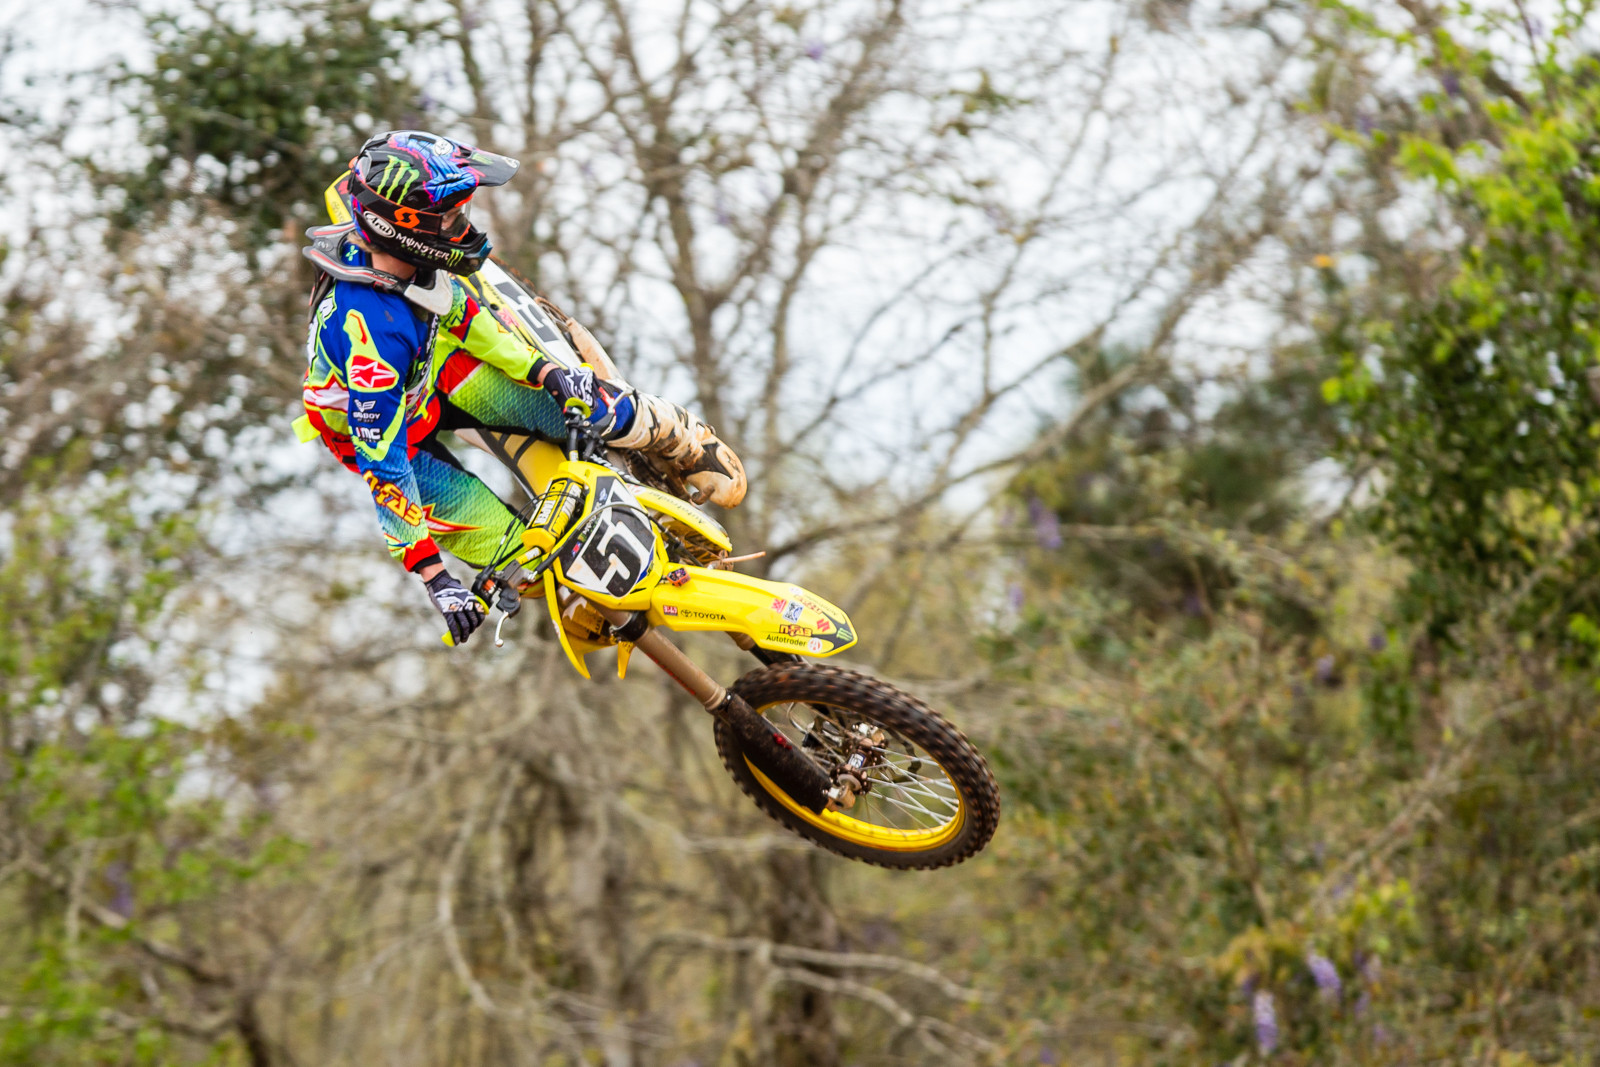 Justin Barcia - Photo Gallery: The Nest, Goat Farm, and MTF - Motocross Pictures - Vital MX